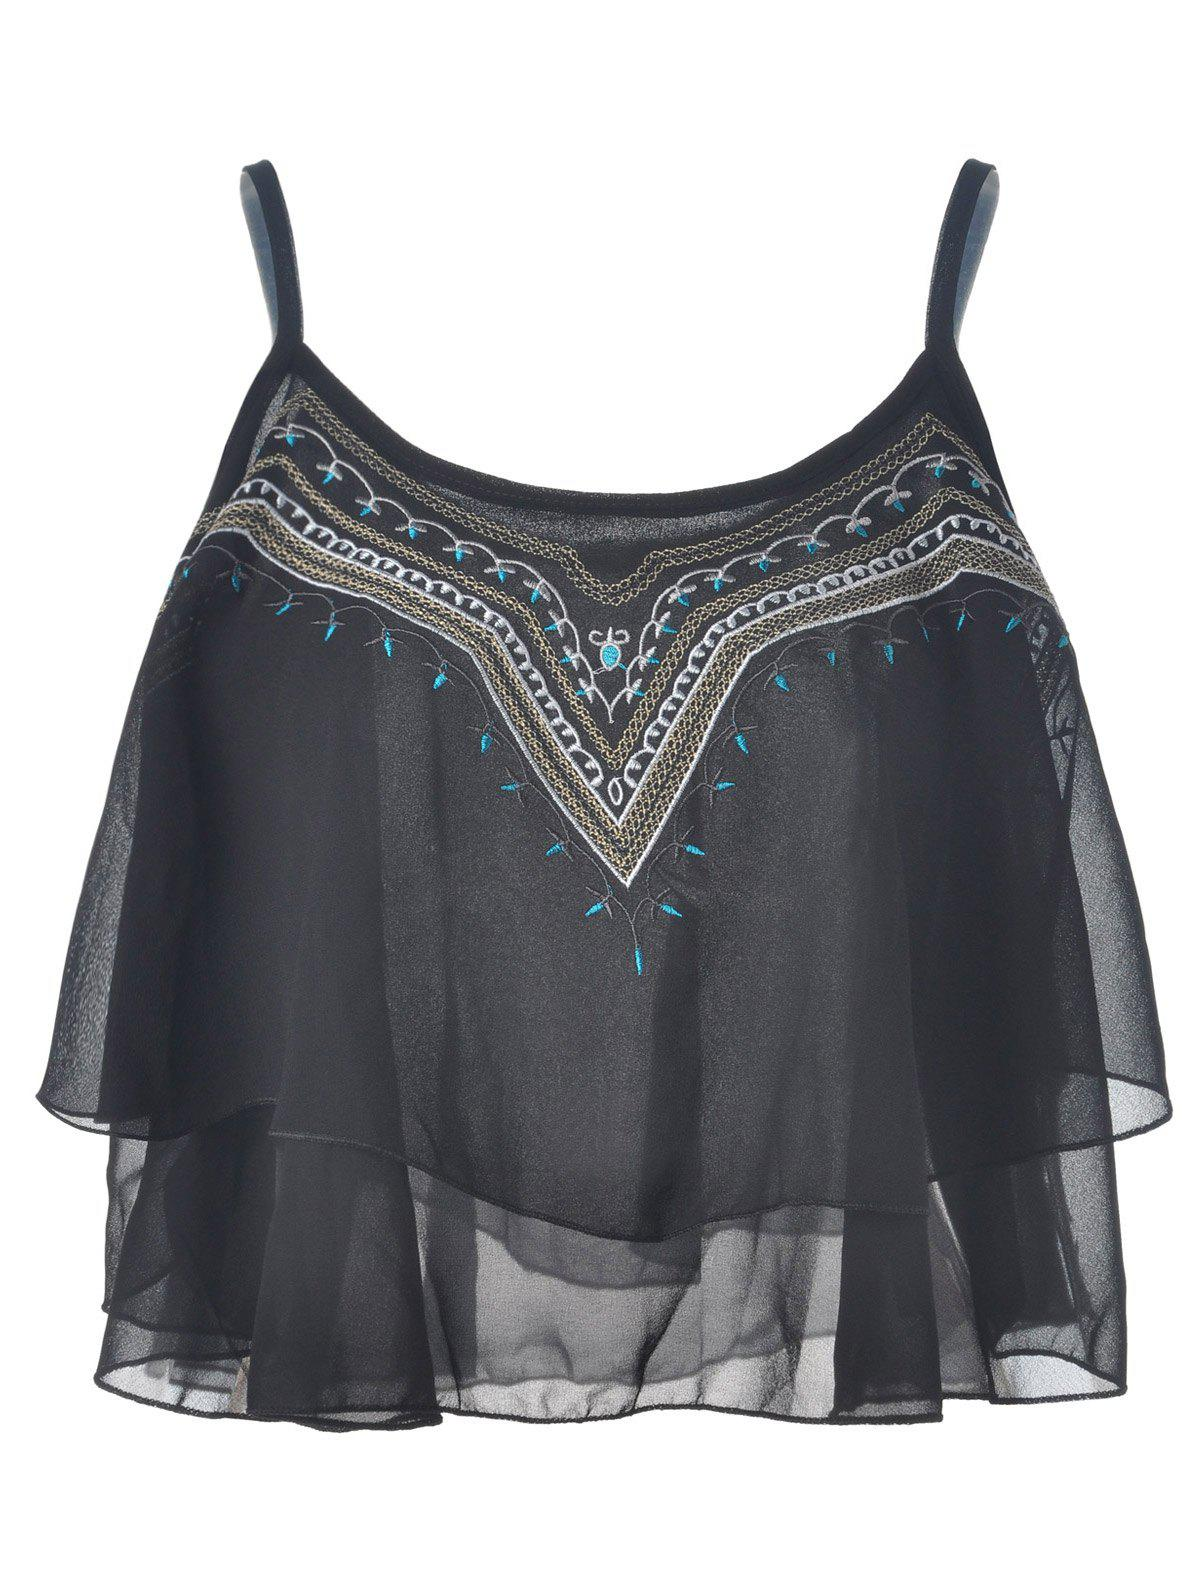 Ethnic Style Embroidery Spaghetti Strap Chiffon Tank Tops For Women - BLACK ONE SIZE(FIT SIZE XS TO M)